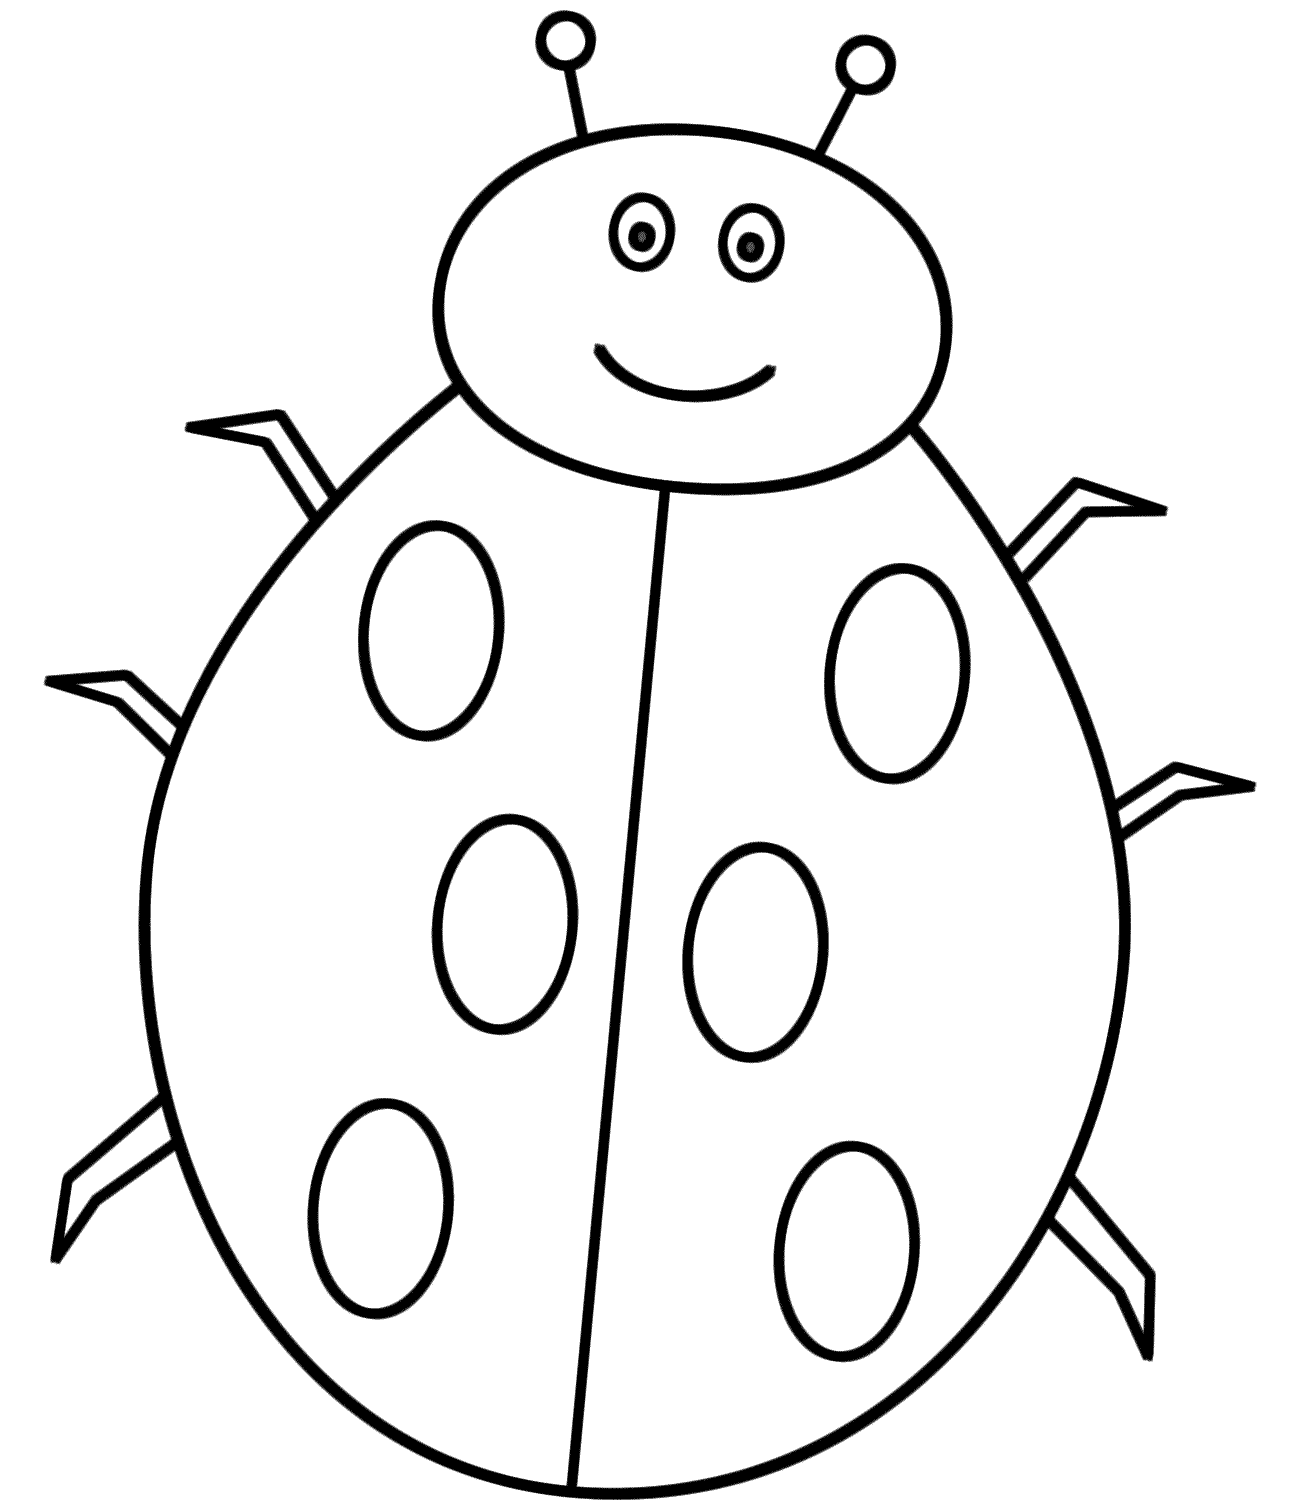 Animal Coloring Book Free Download : Ladybug coloring pages to download and print for free